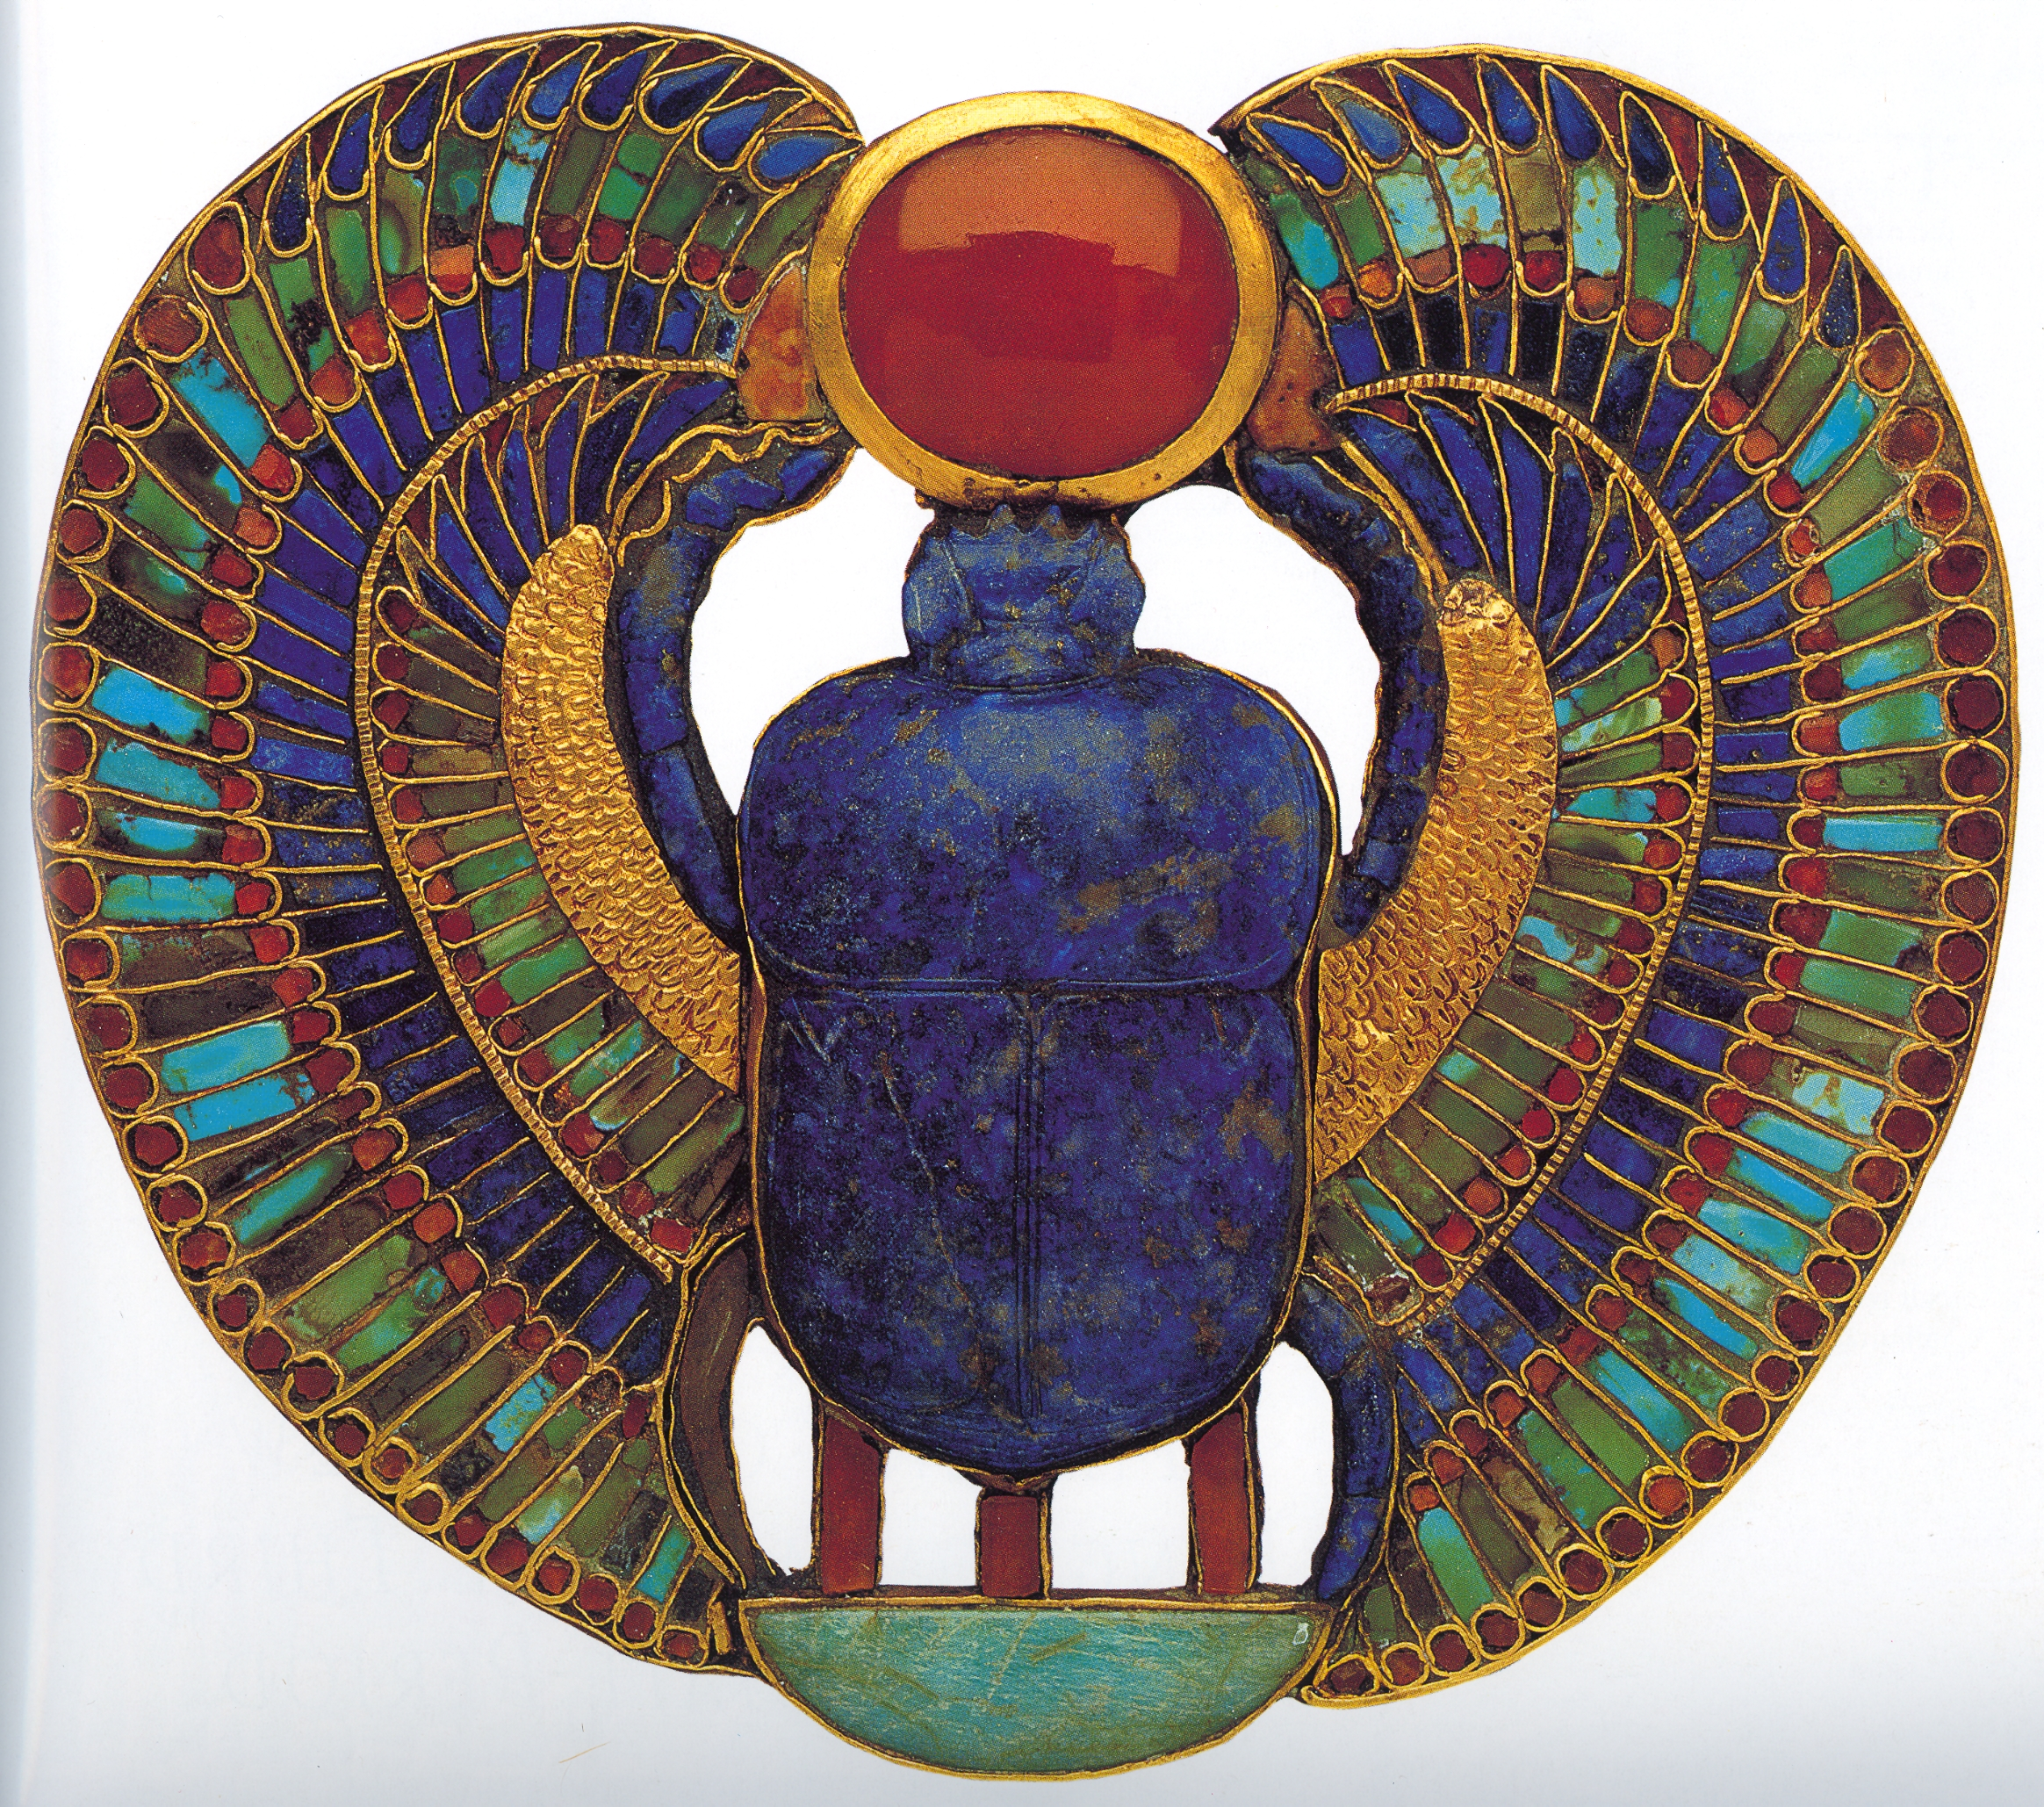 Pectoral with Winged Scarab and Name of King, Tutankhamun Tomb (18th Dynasty, Thebes, Egypt) copy